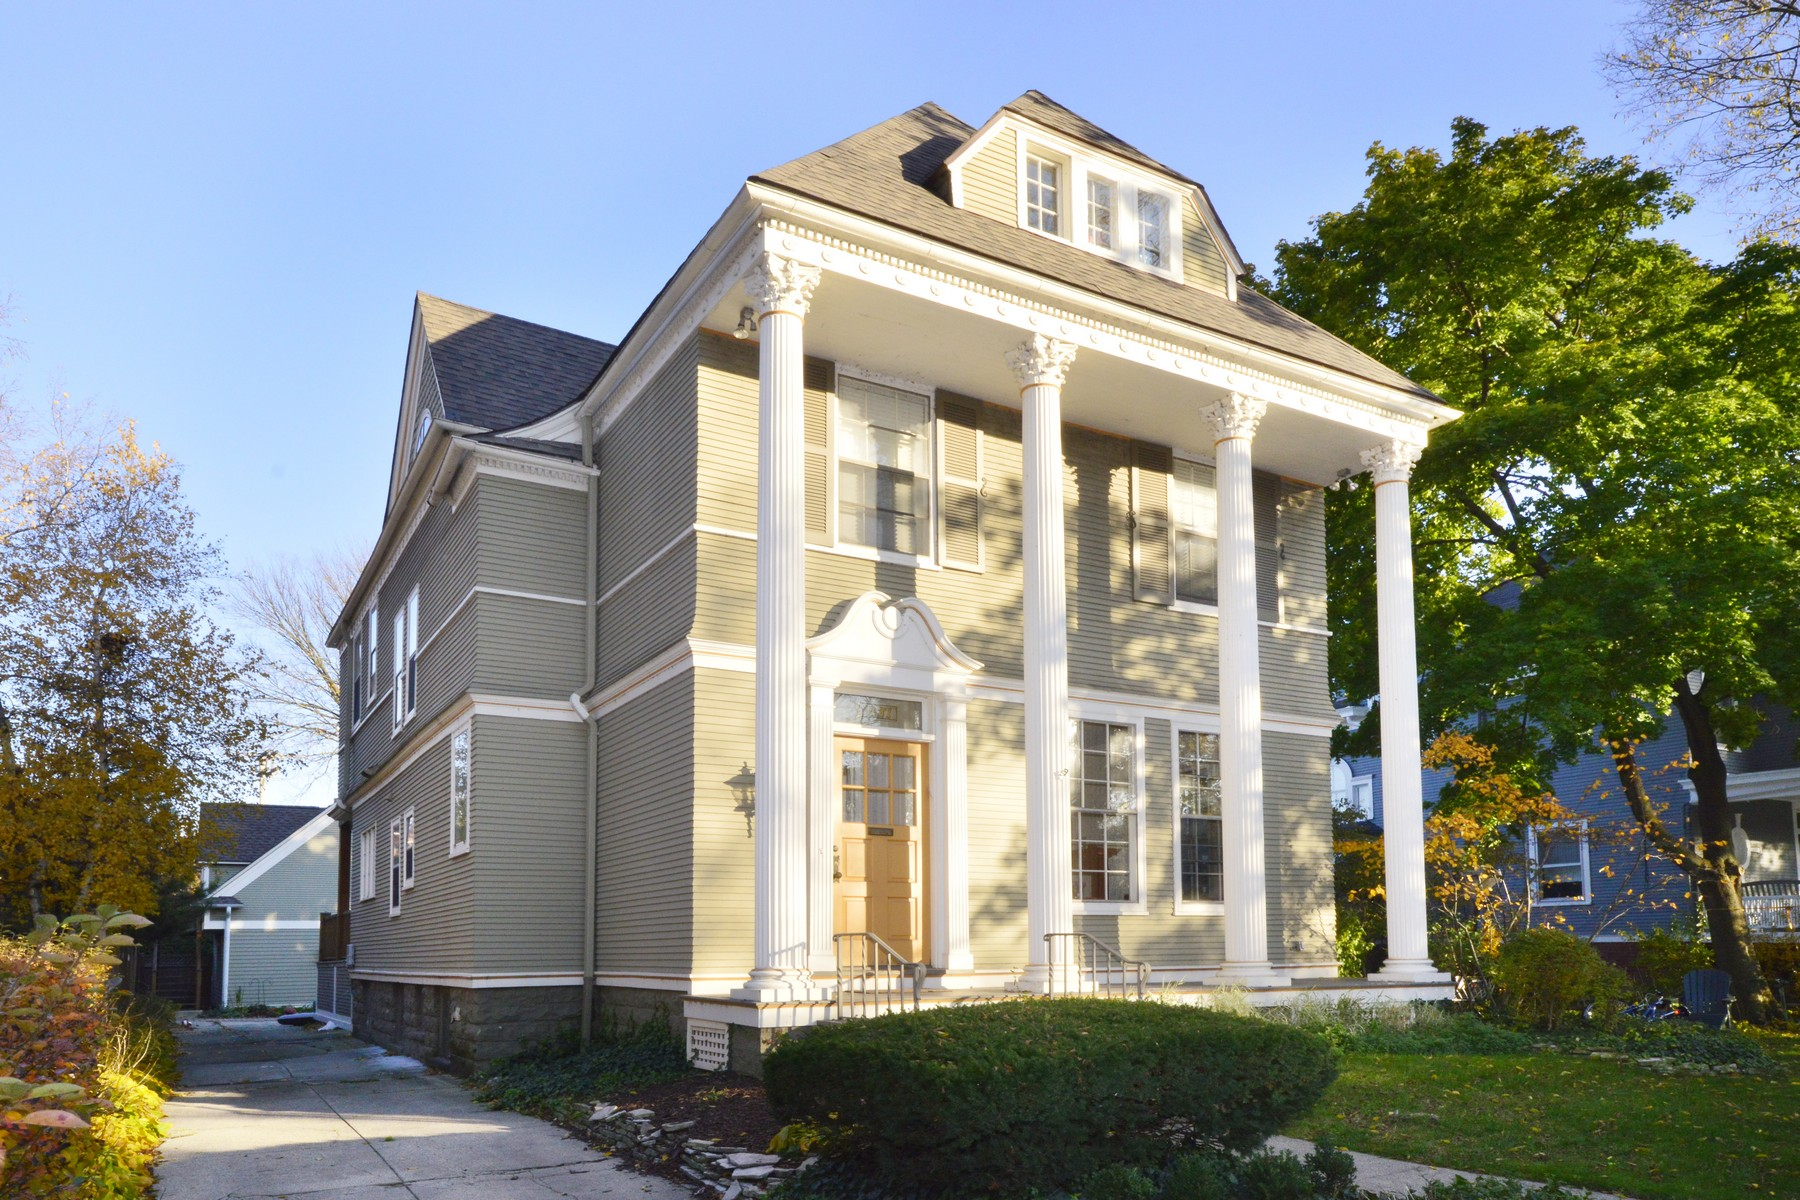 独户住宅 为 销售 在 Gorgeous Italianate home on coveted, tree lined street! 1037 Michigan Avenue, 埃文斯顿, 伊利诺斯州, 60202 美国